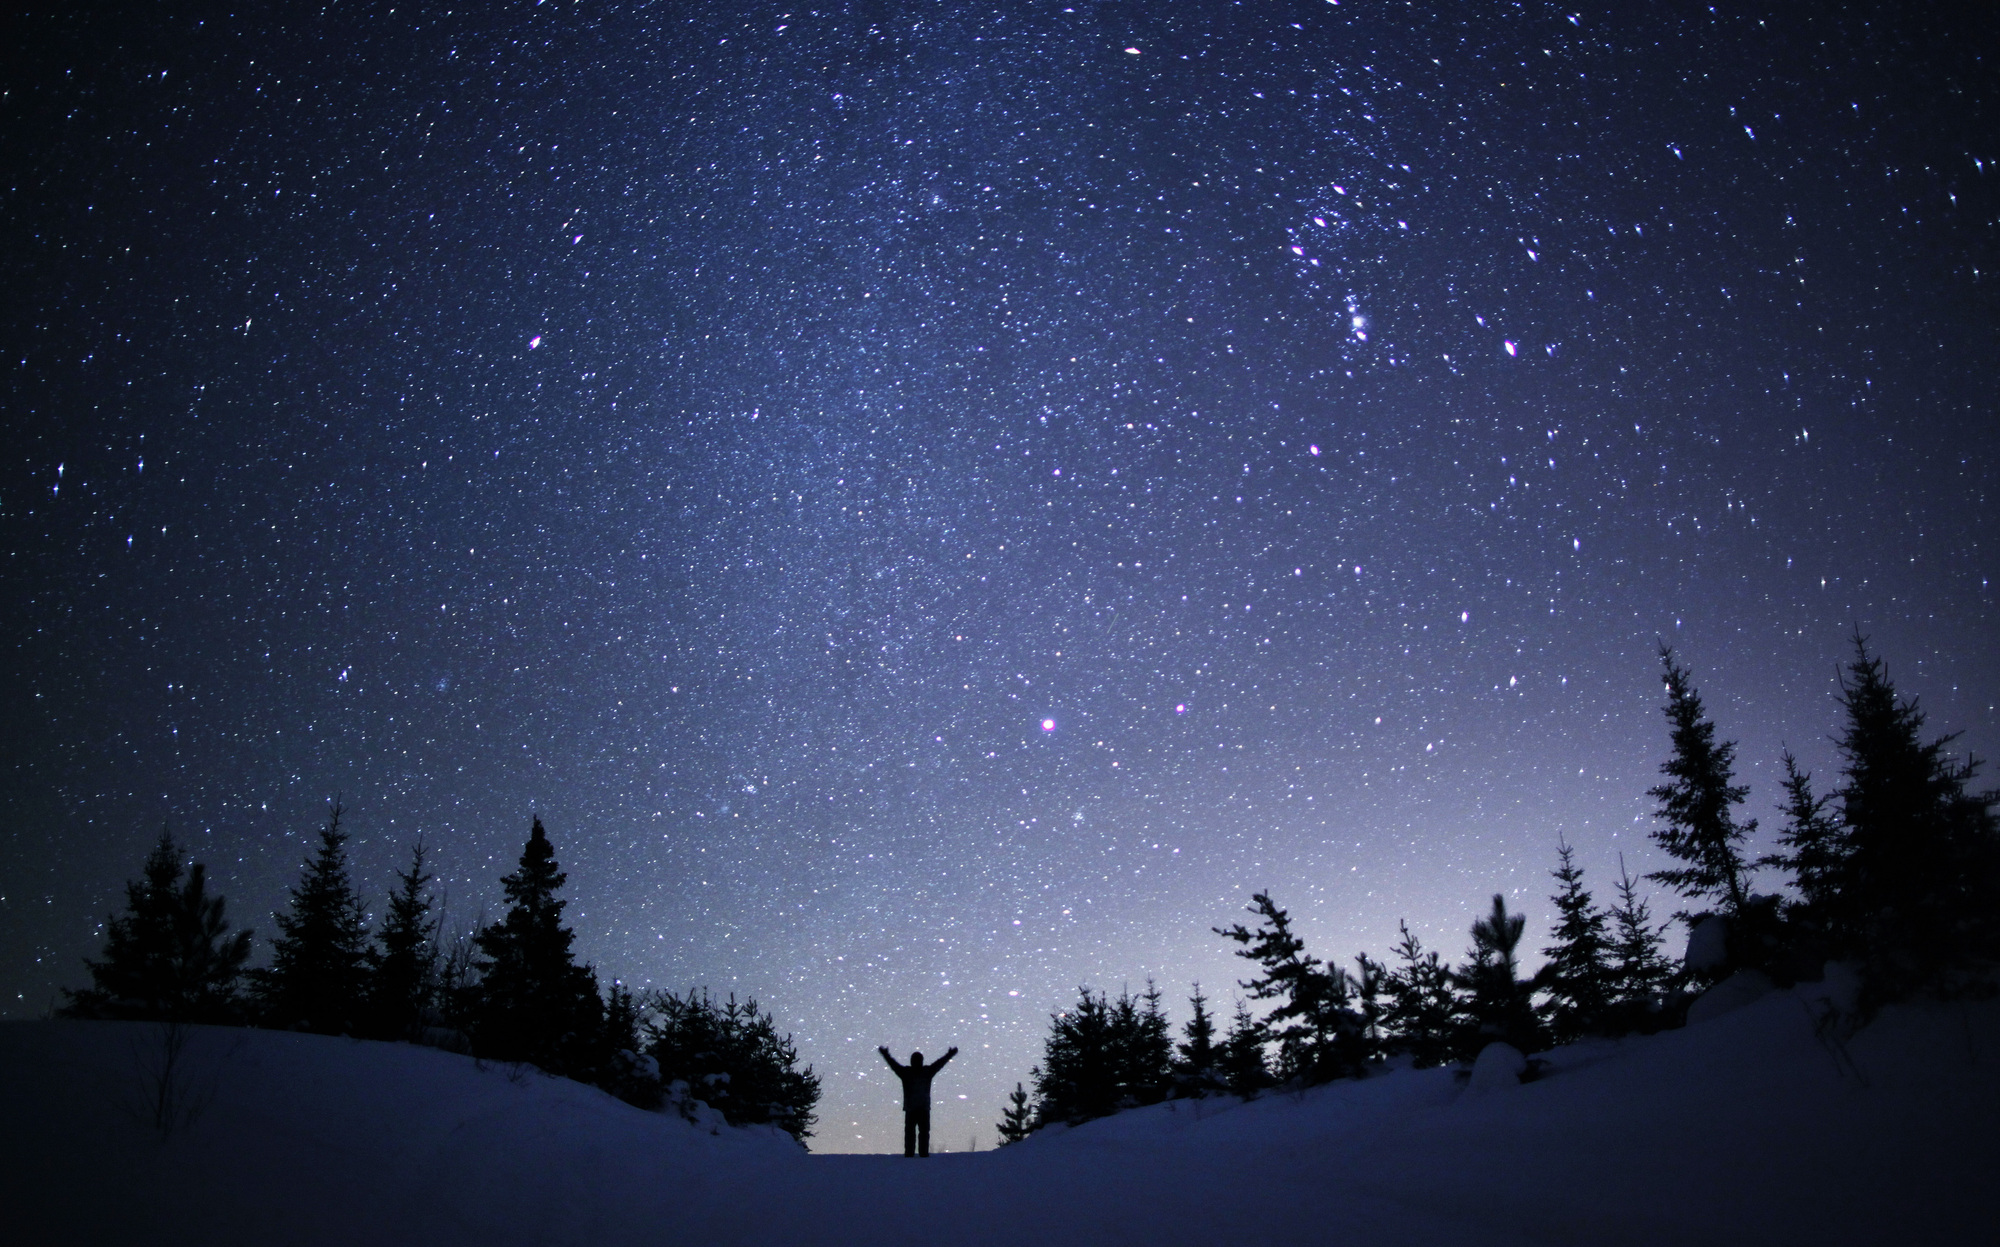 Winter nightsky photo